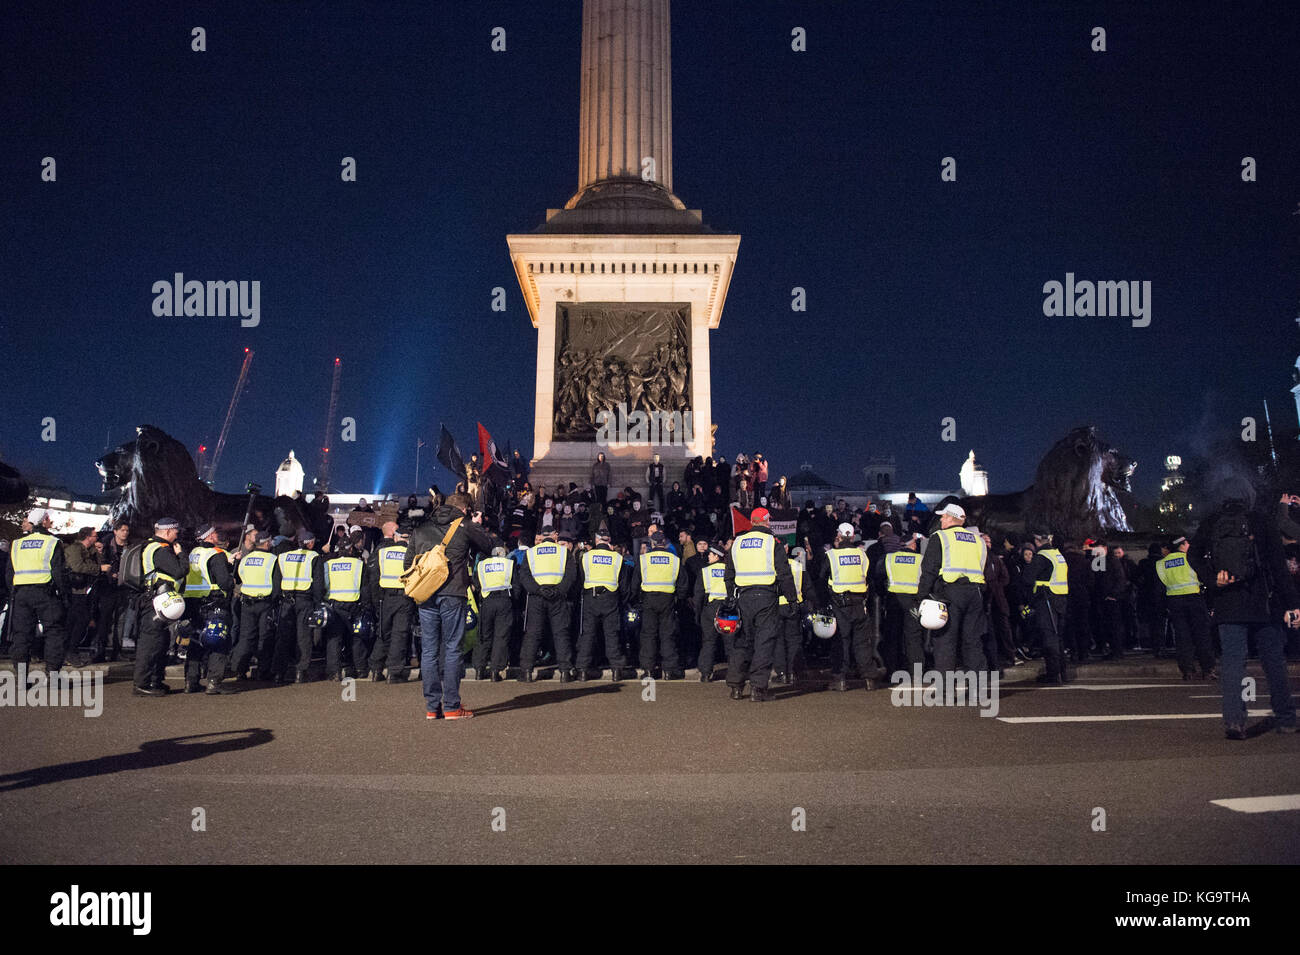 London, United Kingdom. 05th Nov, 2017. Million Mask March 2017 takes place in central London. Police form a cordon - Stock Image